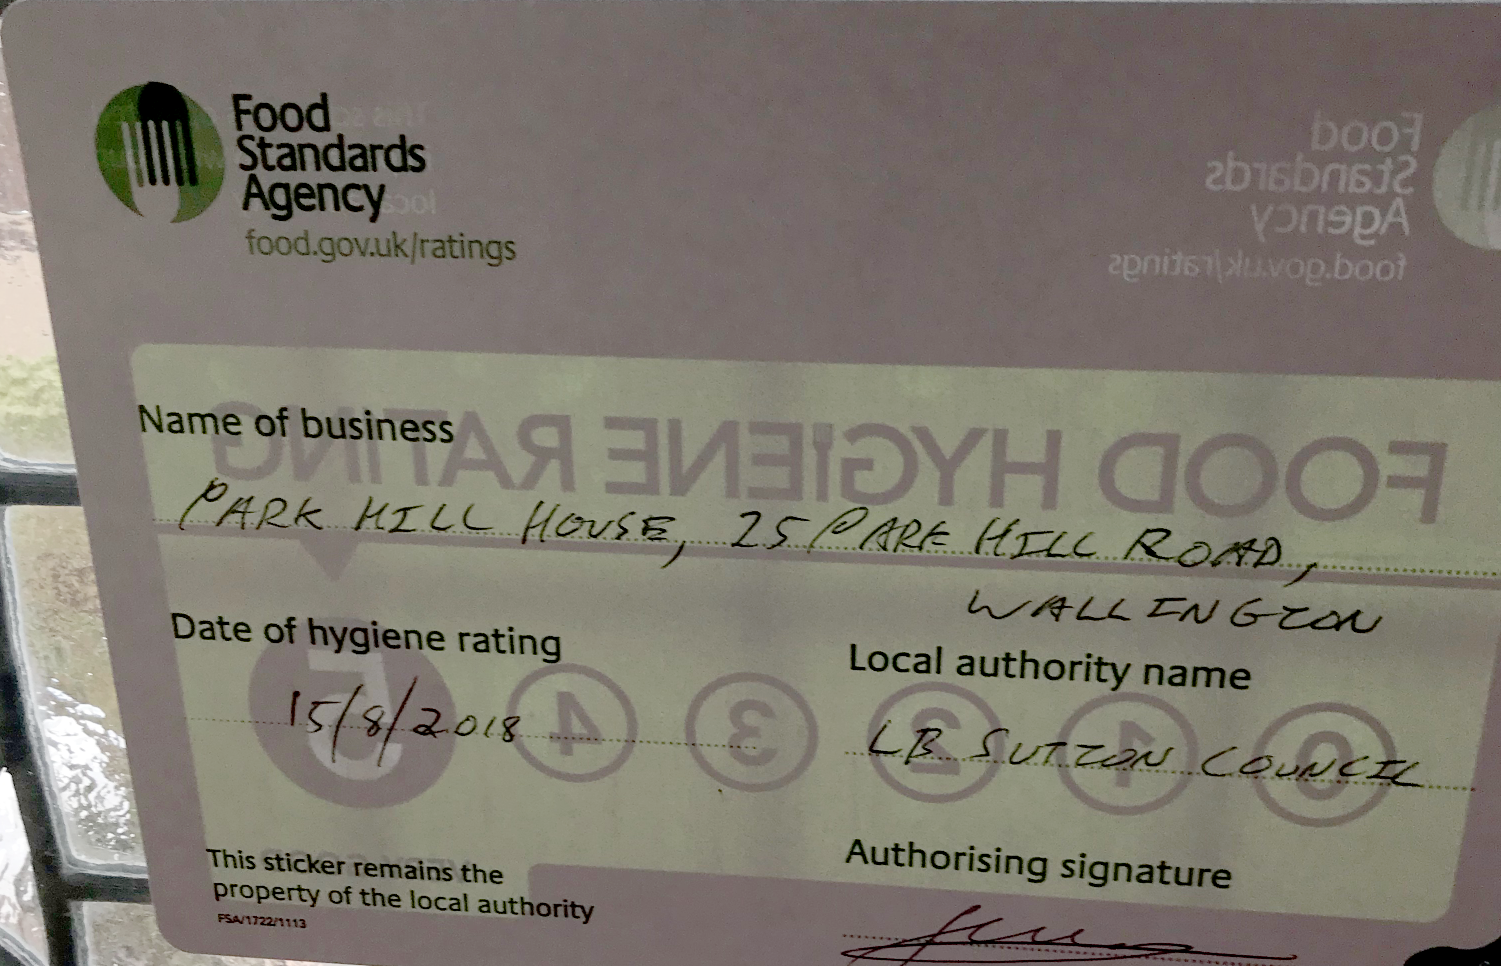 Food Hygiene Rating 5 For Park Hill House Fountain And